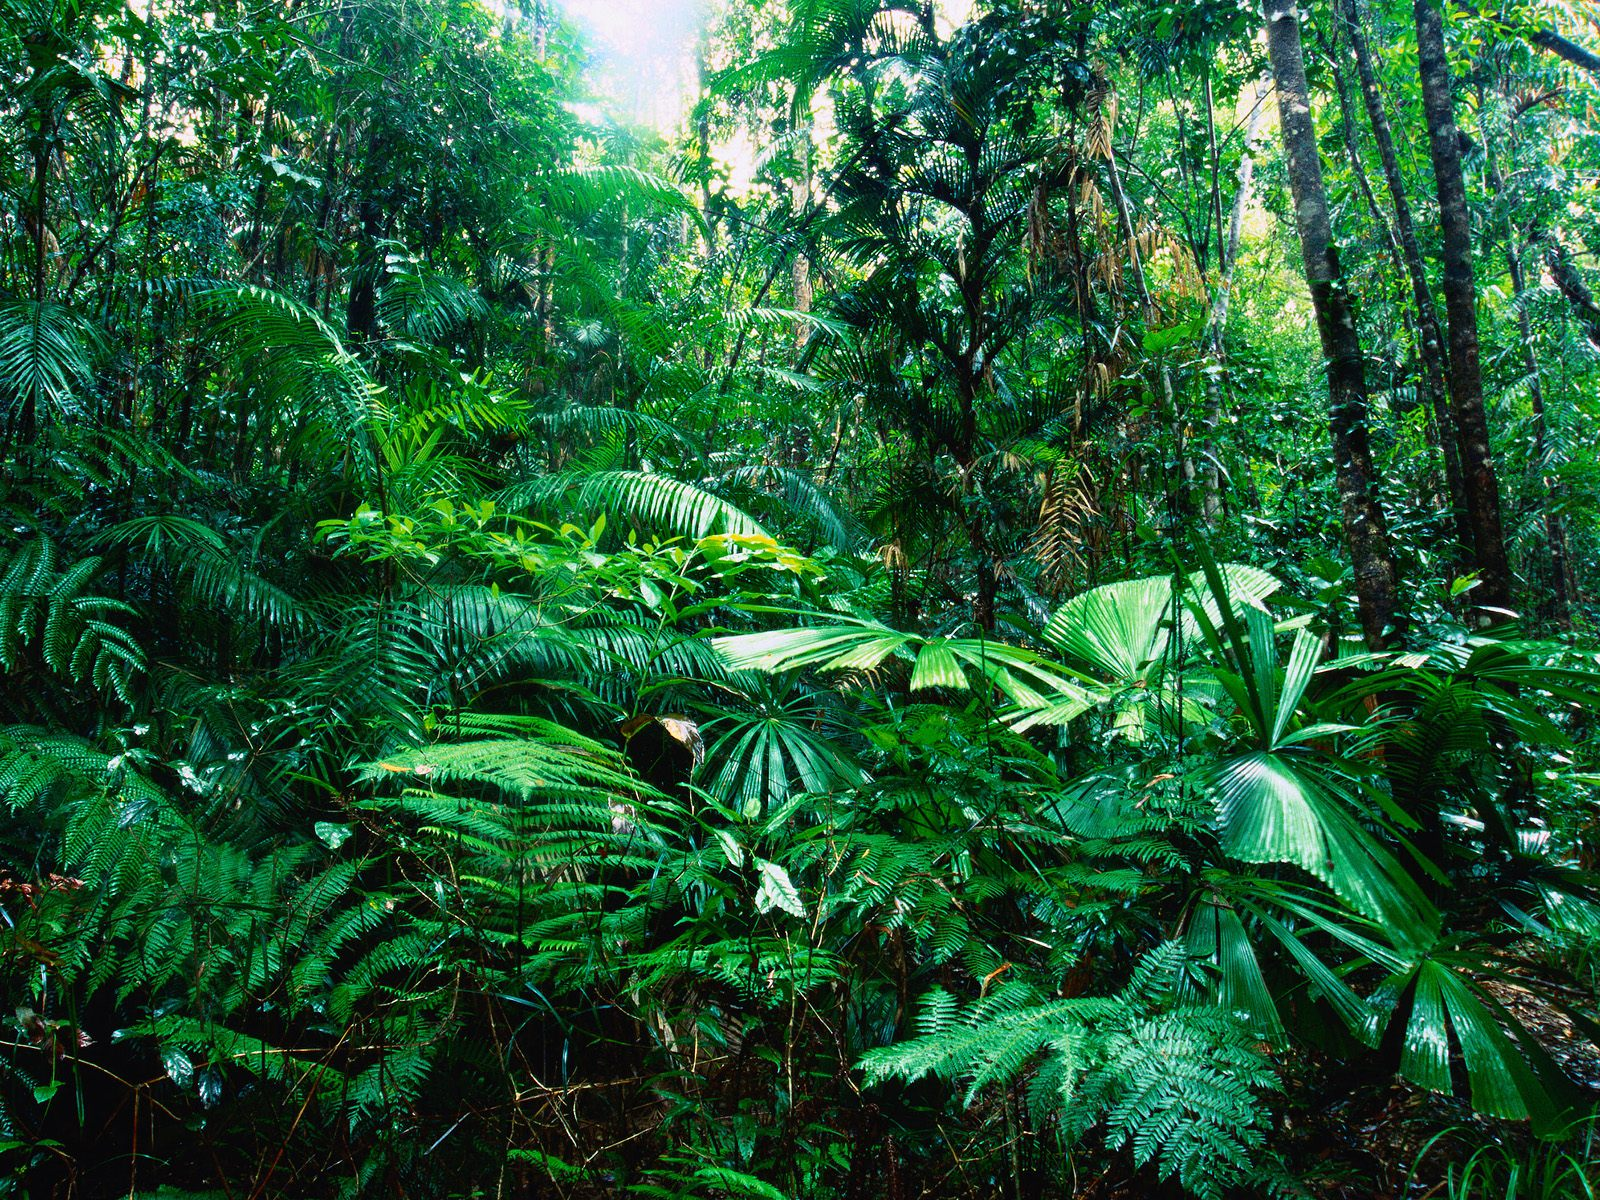 alliteration for the tropical rainforest